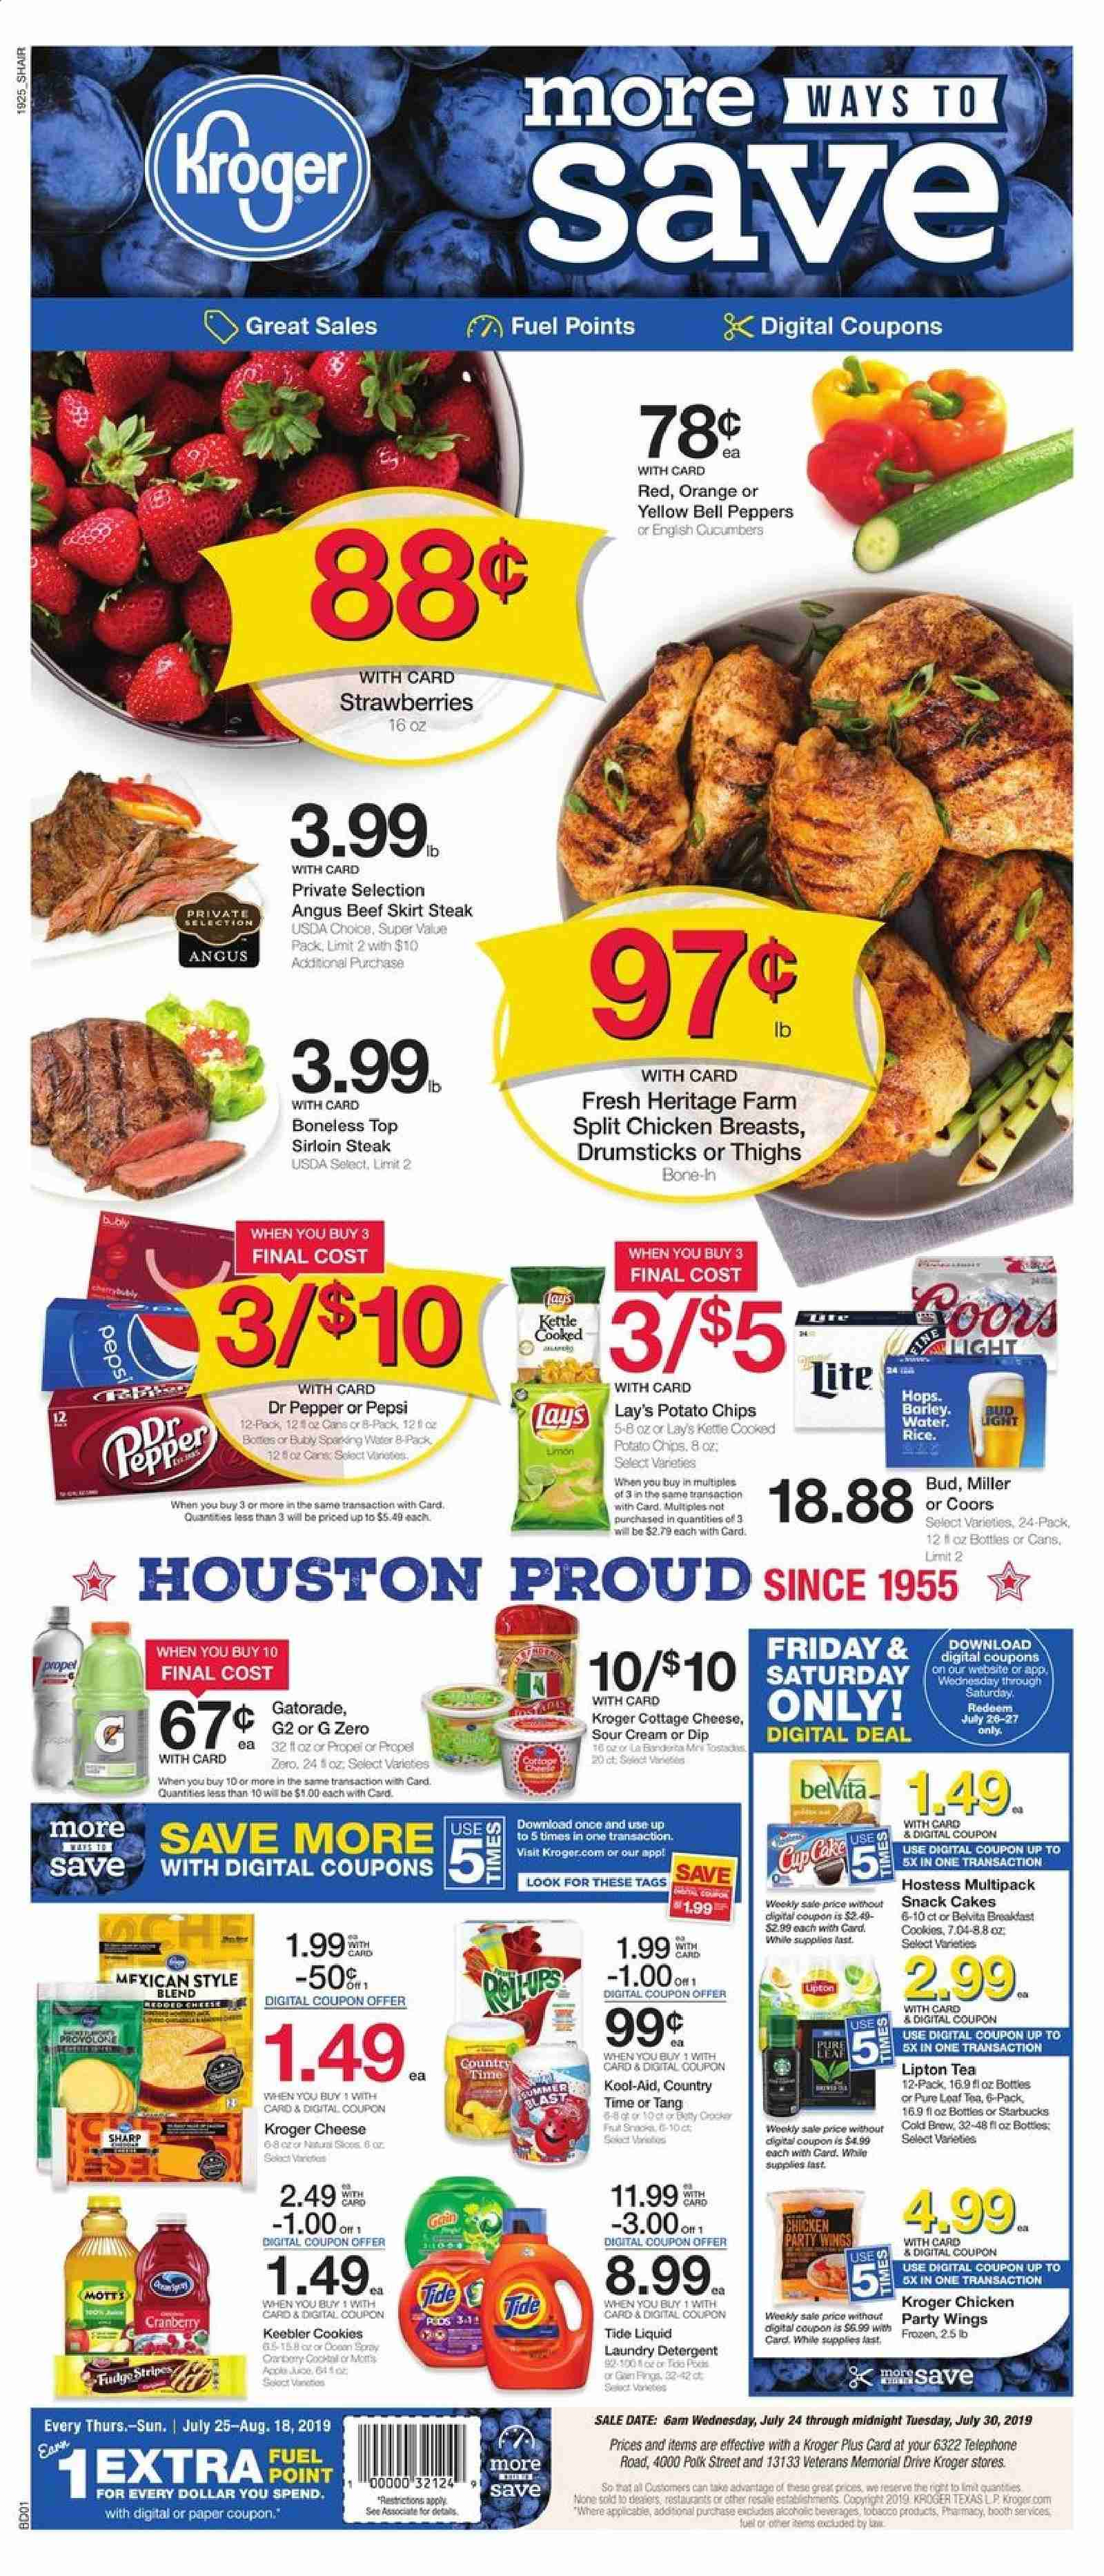 Kroger Flyer - 07.24.2019 - 07.30.2019 - Sales products - apples, barley, beef meat, bell peppers, cap, cookies, detergent, frozen, fudge, fuel, gain, rice, sharp, skirt, sour cream, starbucks, strawberries, tea, tide, polk, potato chips, chicken, chicken breast, pepsi, orange, chips, steak, cheese, cake, pepper, snack, bud light, lay's, lipton, wings, miller, coors, dr. pepper, cranberry, liquid, peppers, gard, laundry detergent, cream. Page 1.